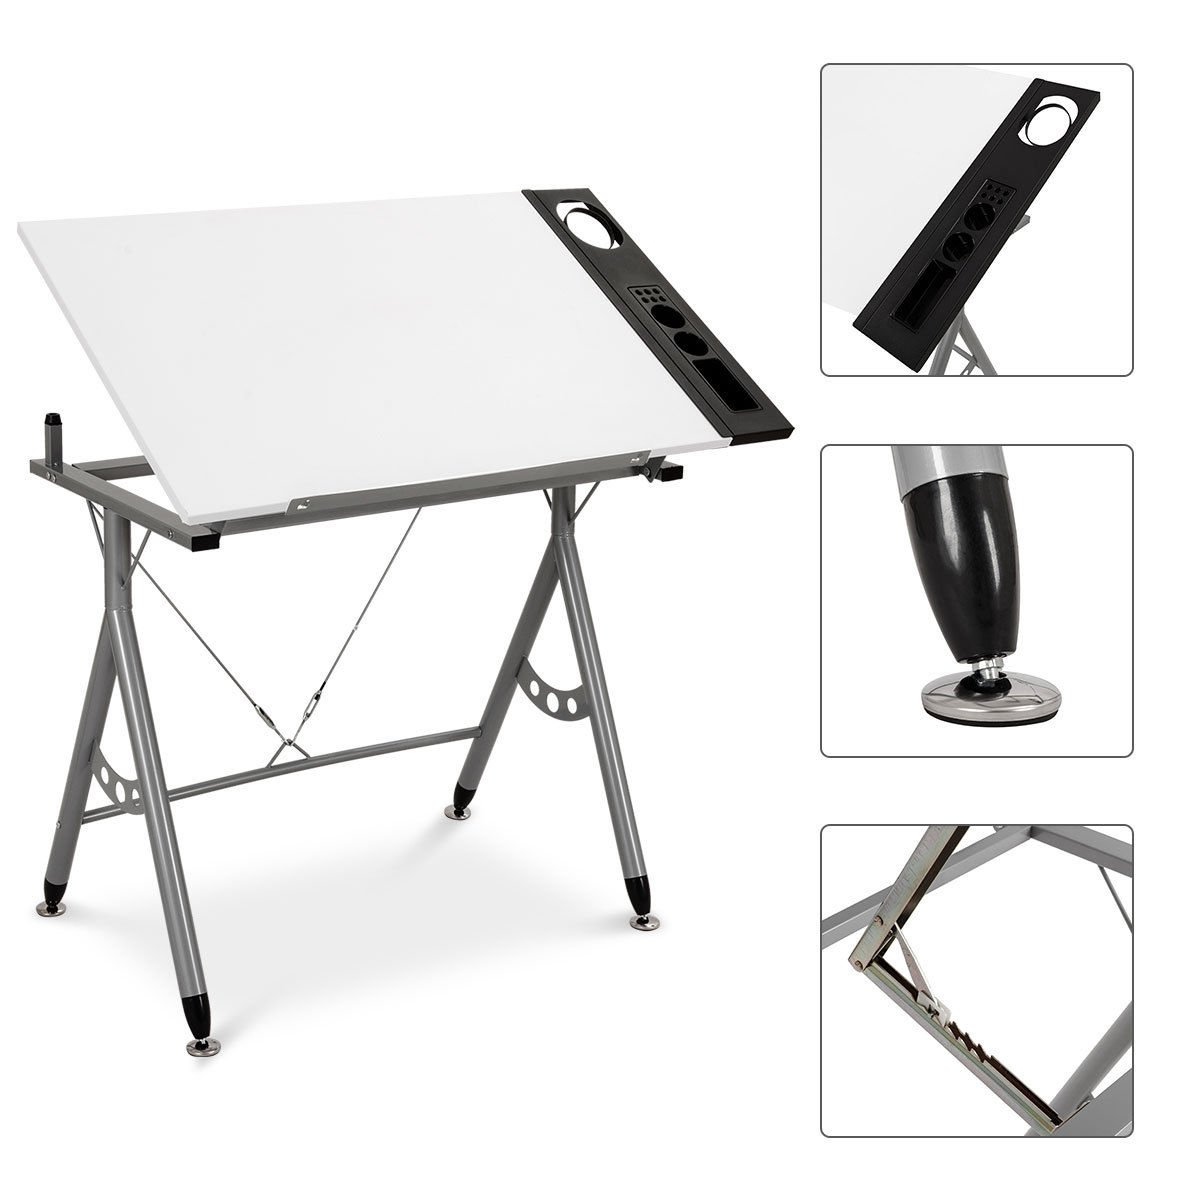 Safstar Adjustable Drafting Drawing Table Desk Tiltable Tabletop for Reading Studying Writing Art Craft Work Station with Side Tray (White) by S AFSTAR